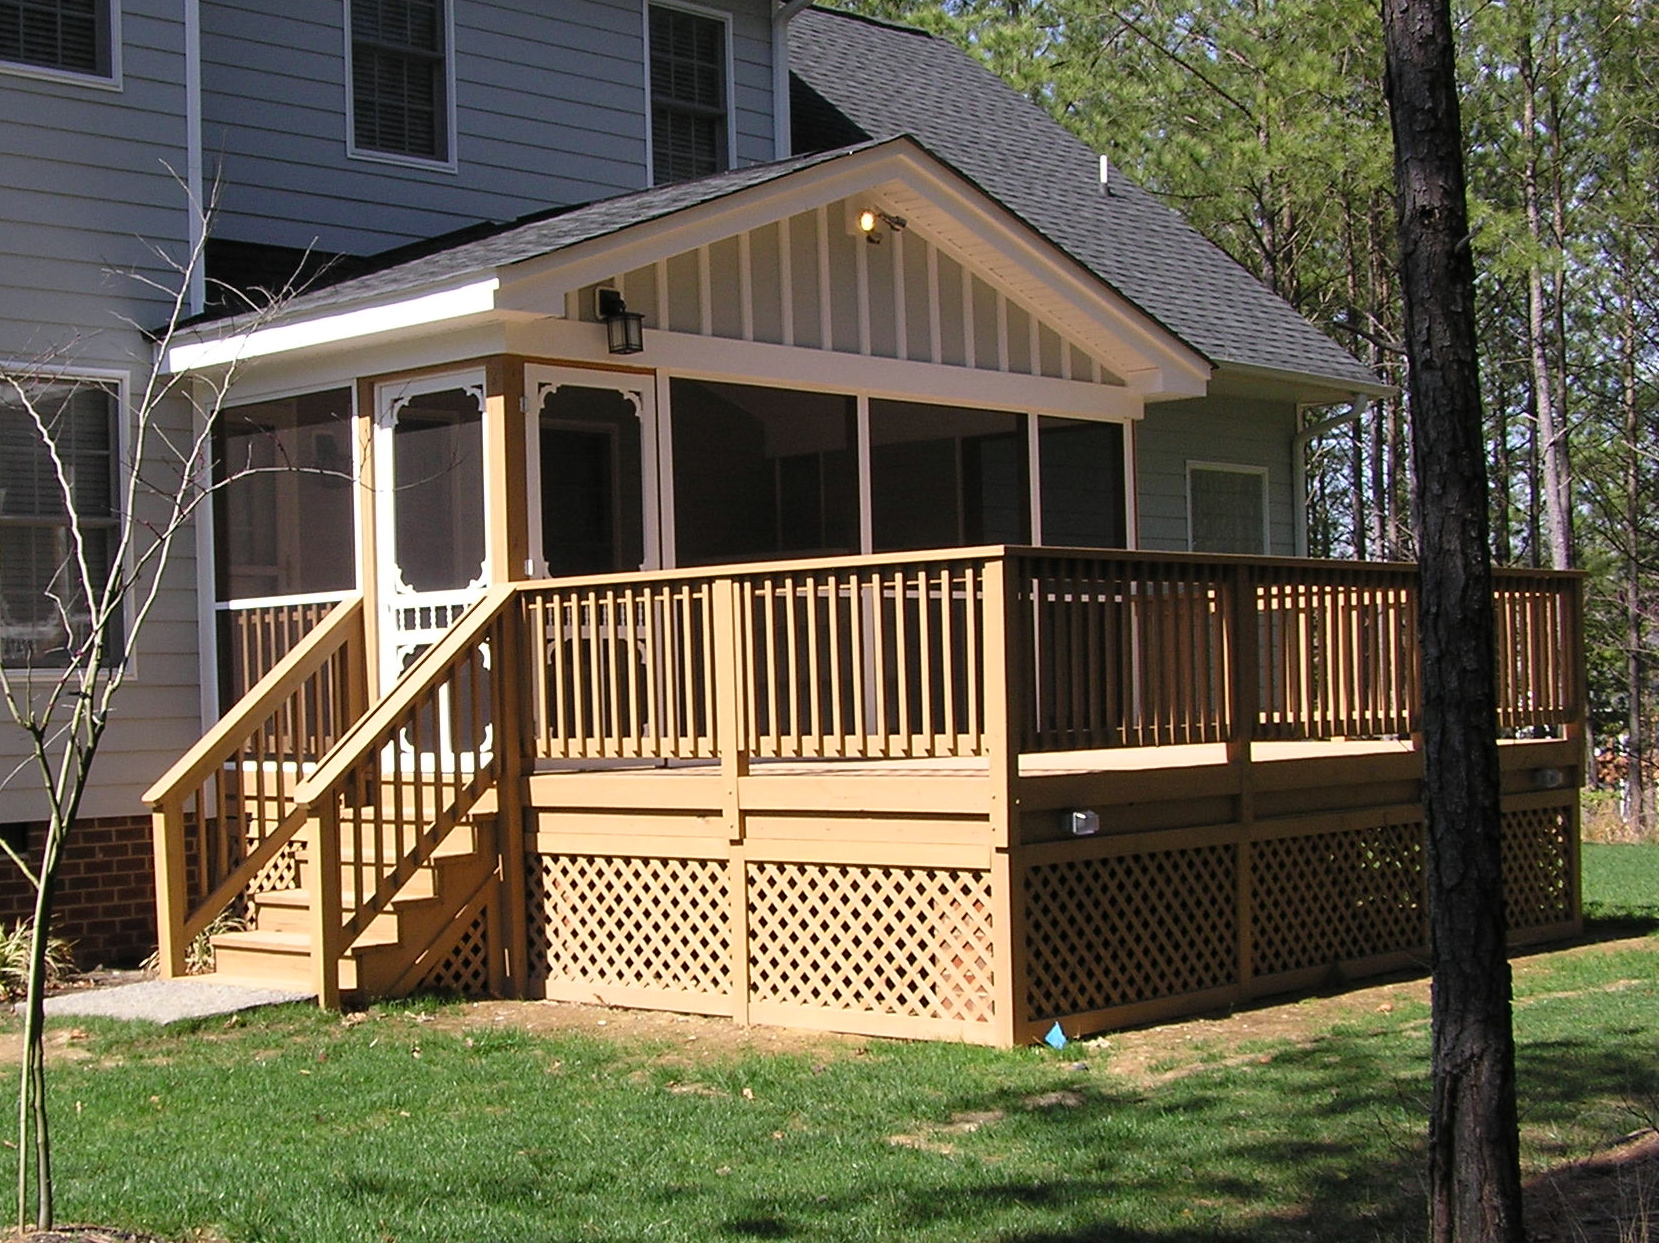 Additions for Screen porch construction plans